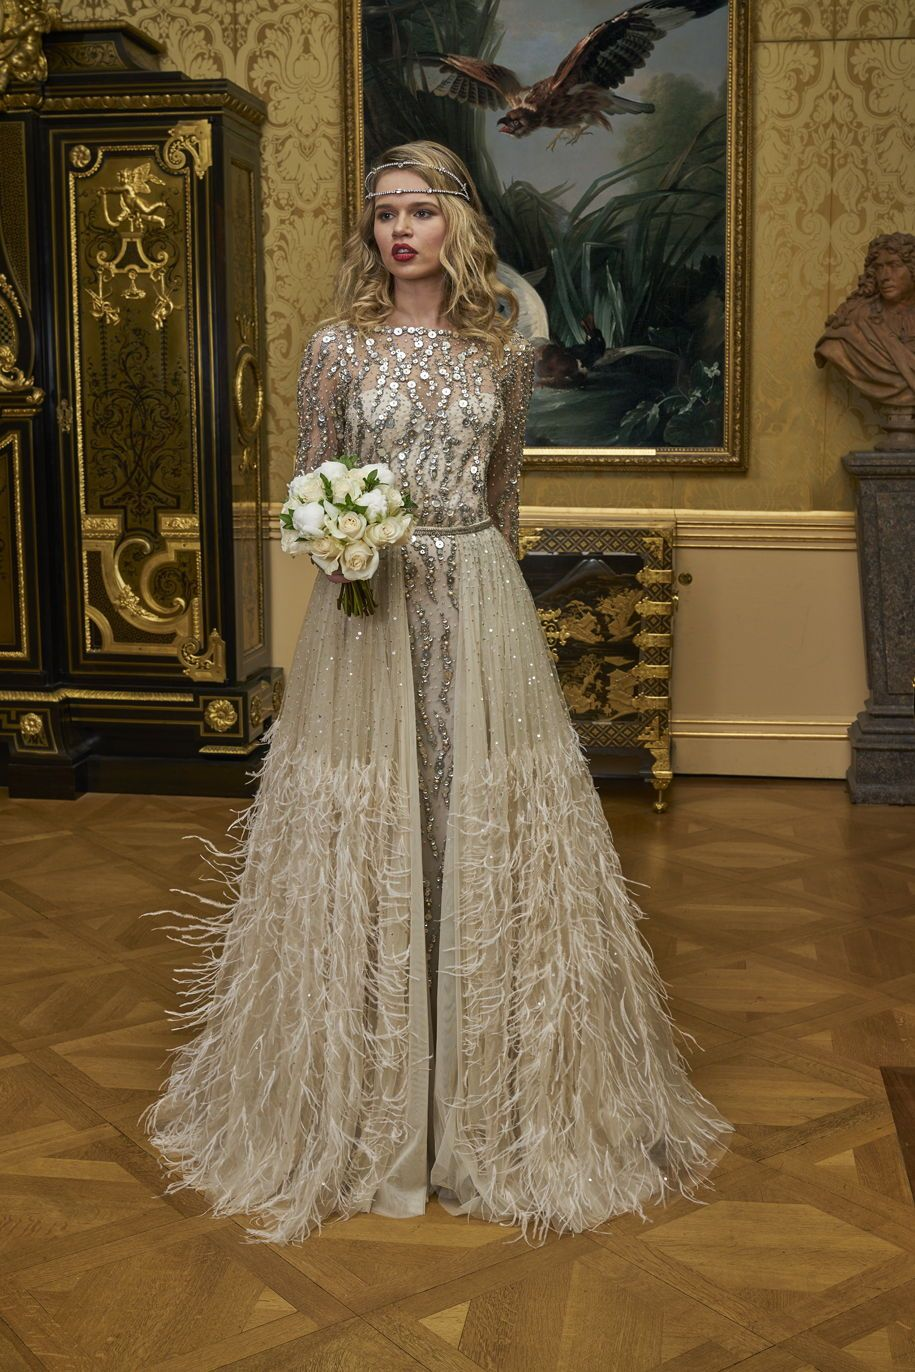 Stunning Beaded Wedding Dress Featuring Long Sleeves And A Slim Skirt With A Detachable Overskirt W Wedding Dress Sequin 1920s Wedding Dress Gold Wedding Dress